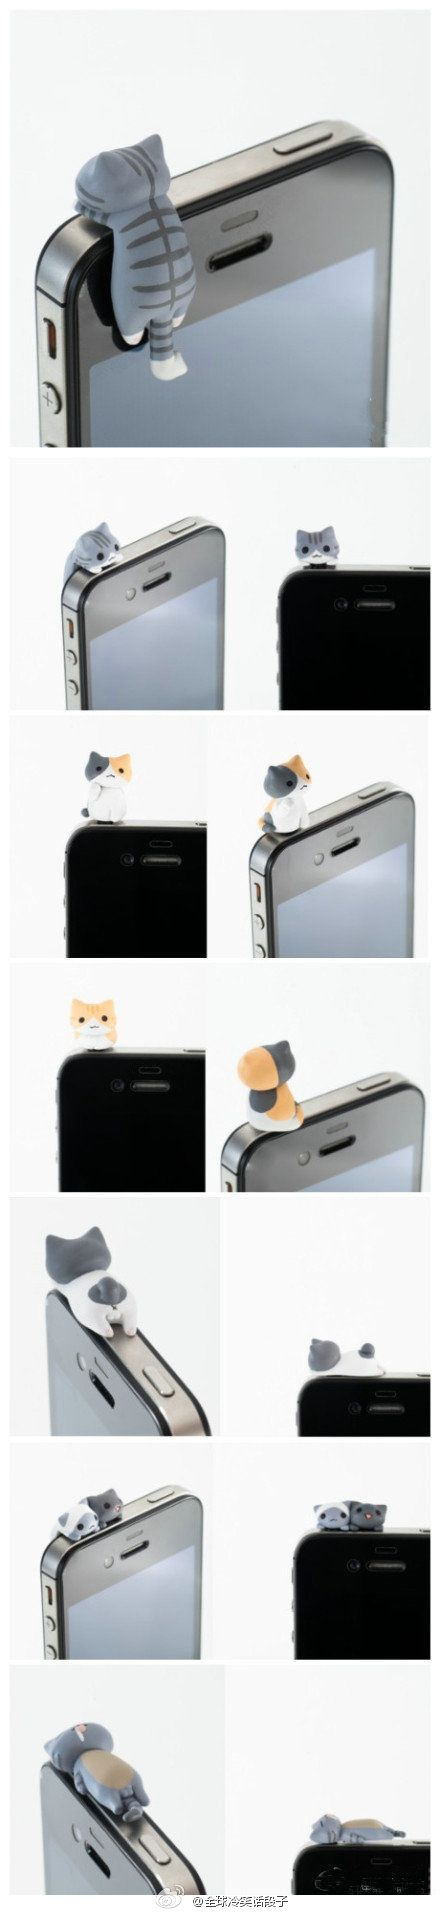 iCat for iPhone!